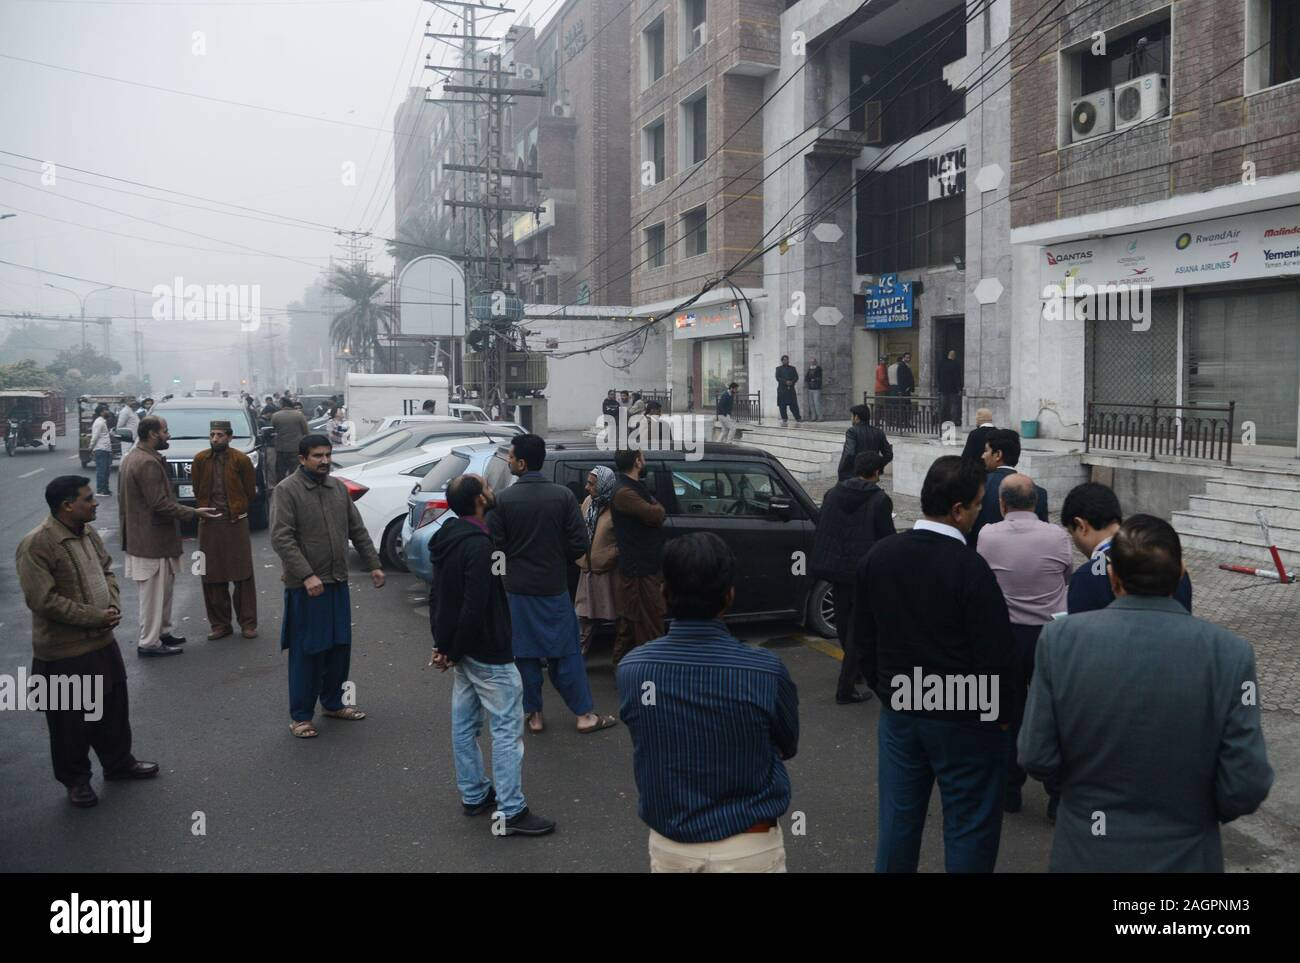 Lahore Pakistan 20th Dec 2019 Pakistani People Gather On Roads In Panic Following A Strong Earthquake